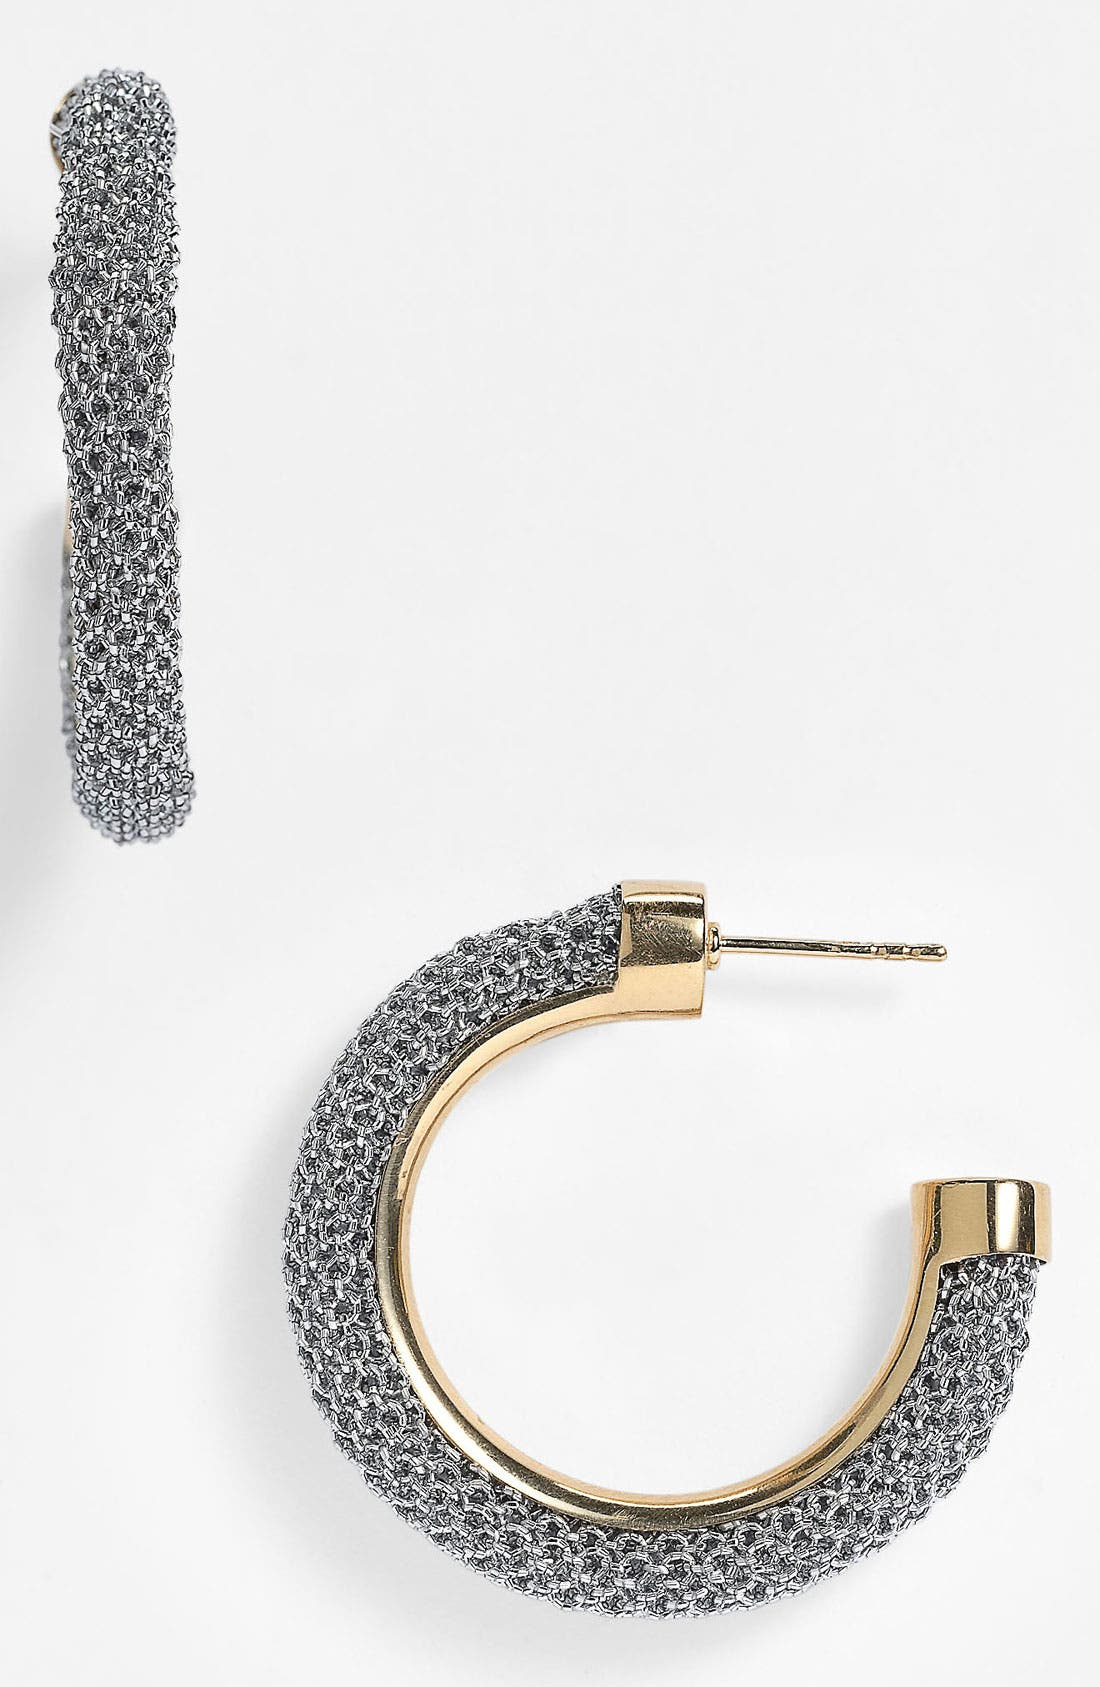 Main Image - Adami & Martucci 'Mesh' Small Hoop Earrings